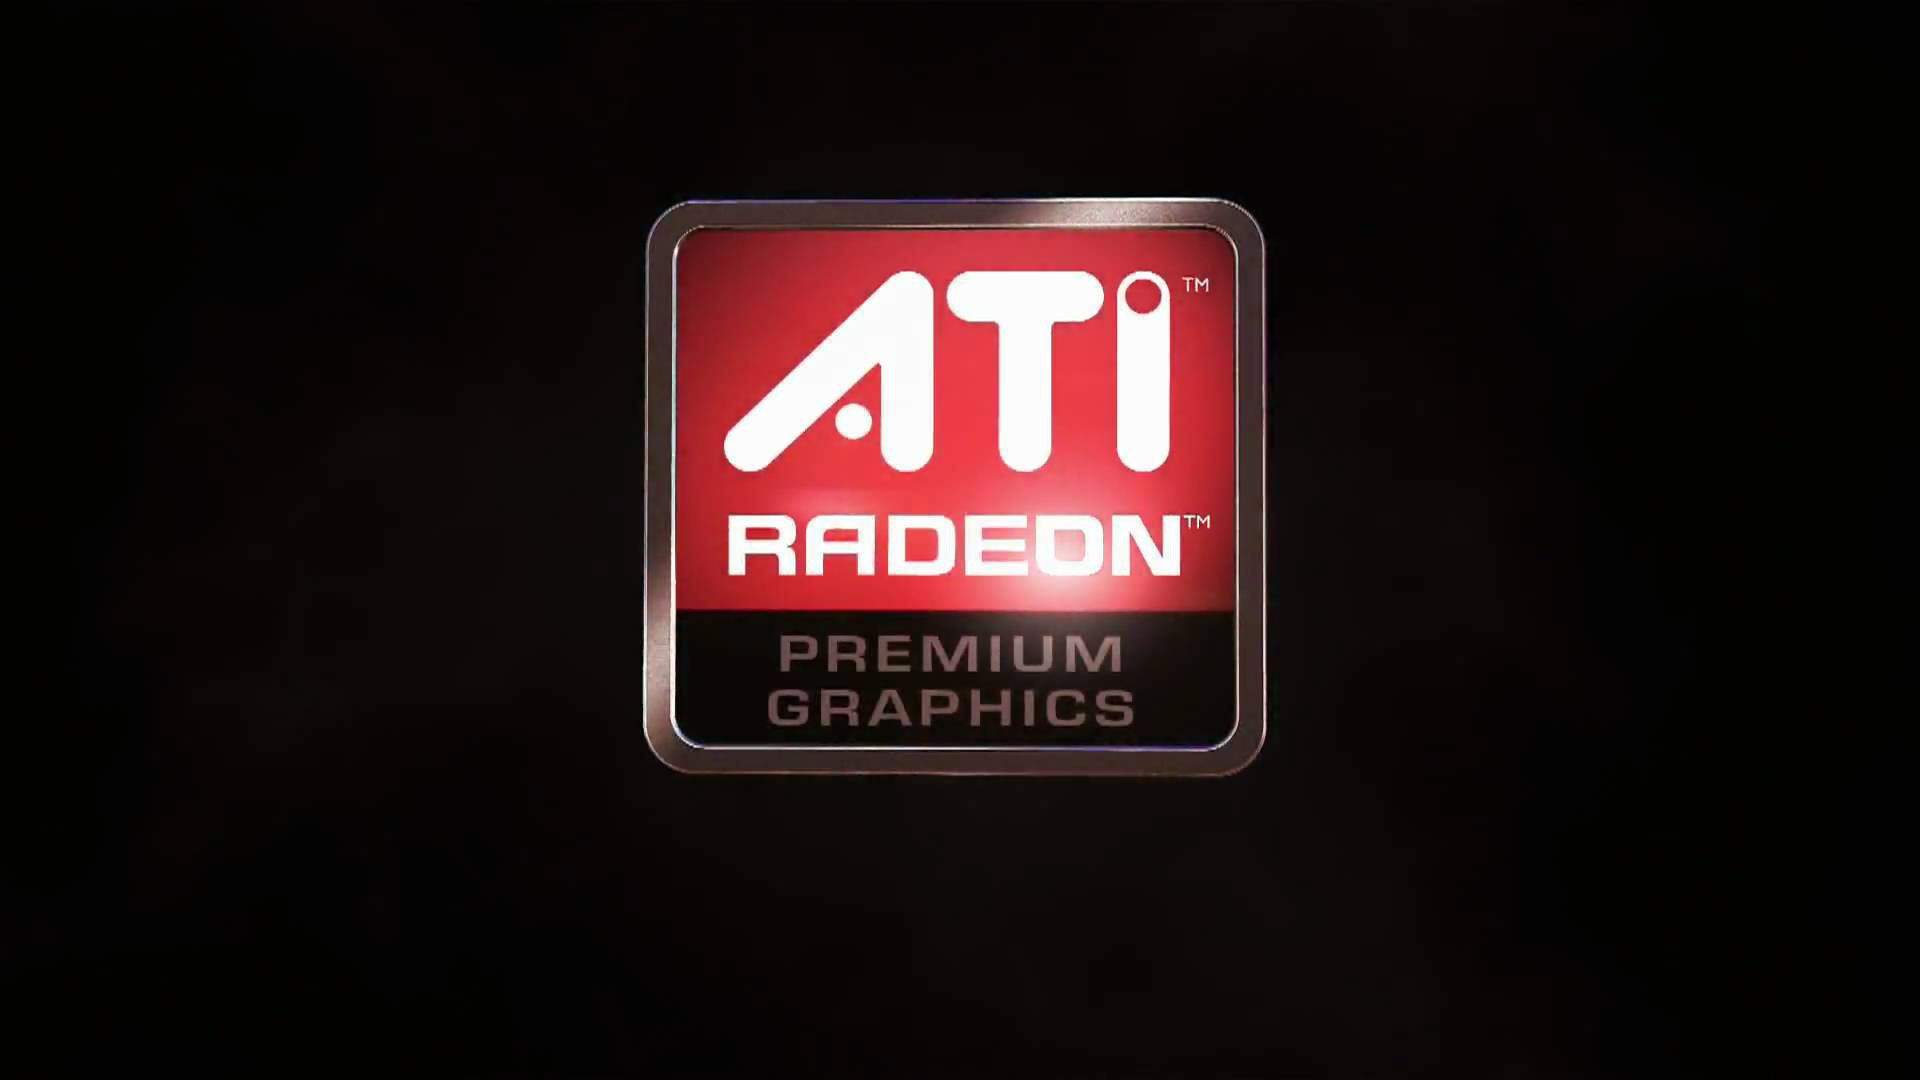 Ati Radeon Photos